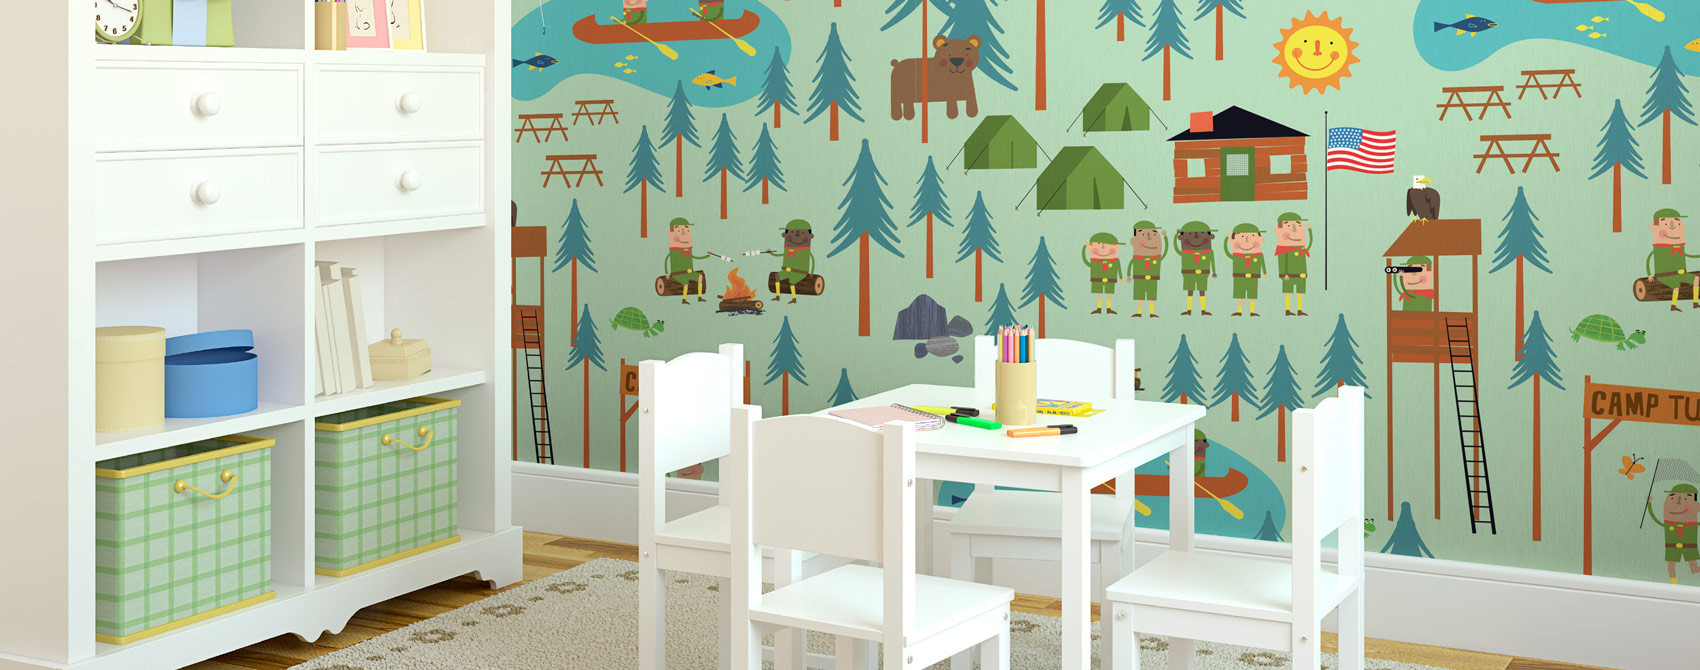 Best ideas about Kids Room Wallpaper . Save or Pin Kids Room Wall Murals & Theme Wallpaper Now.